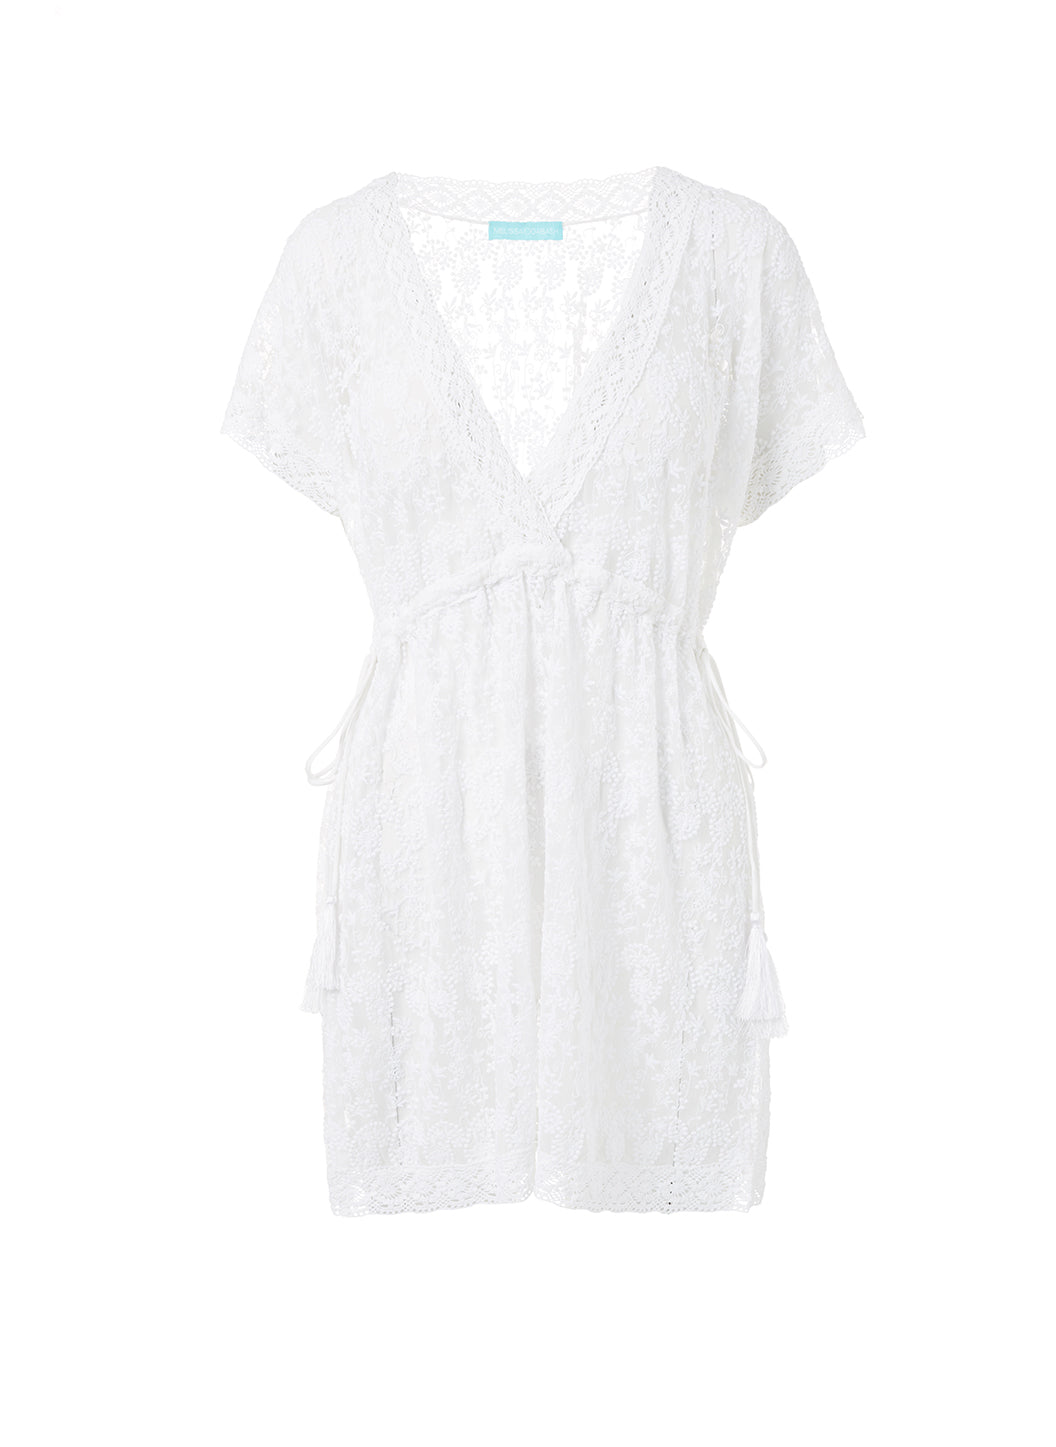 Adelina White Embroidered Short Tie-Side Beach Dress - Melissa Odabash New Arrivals